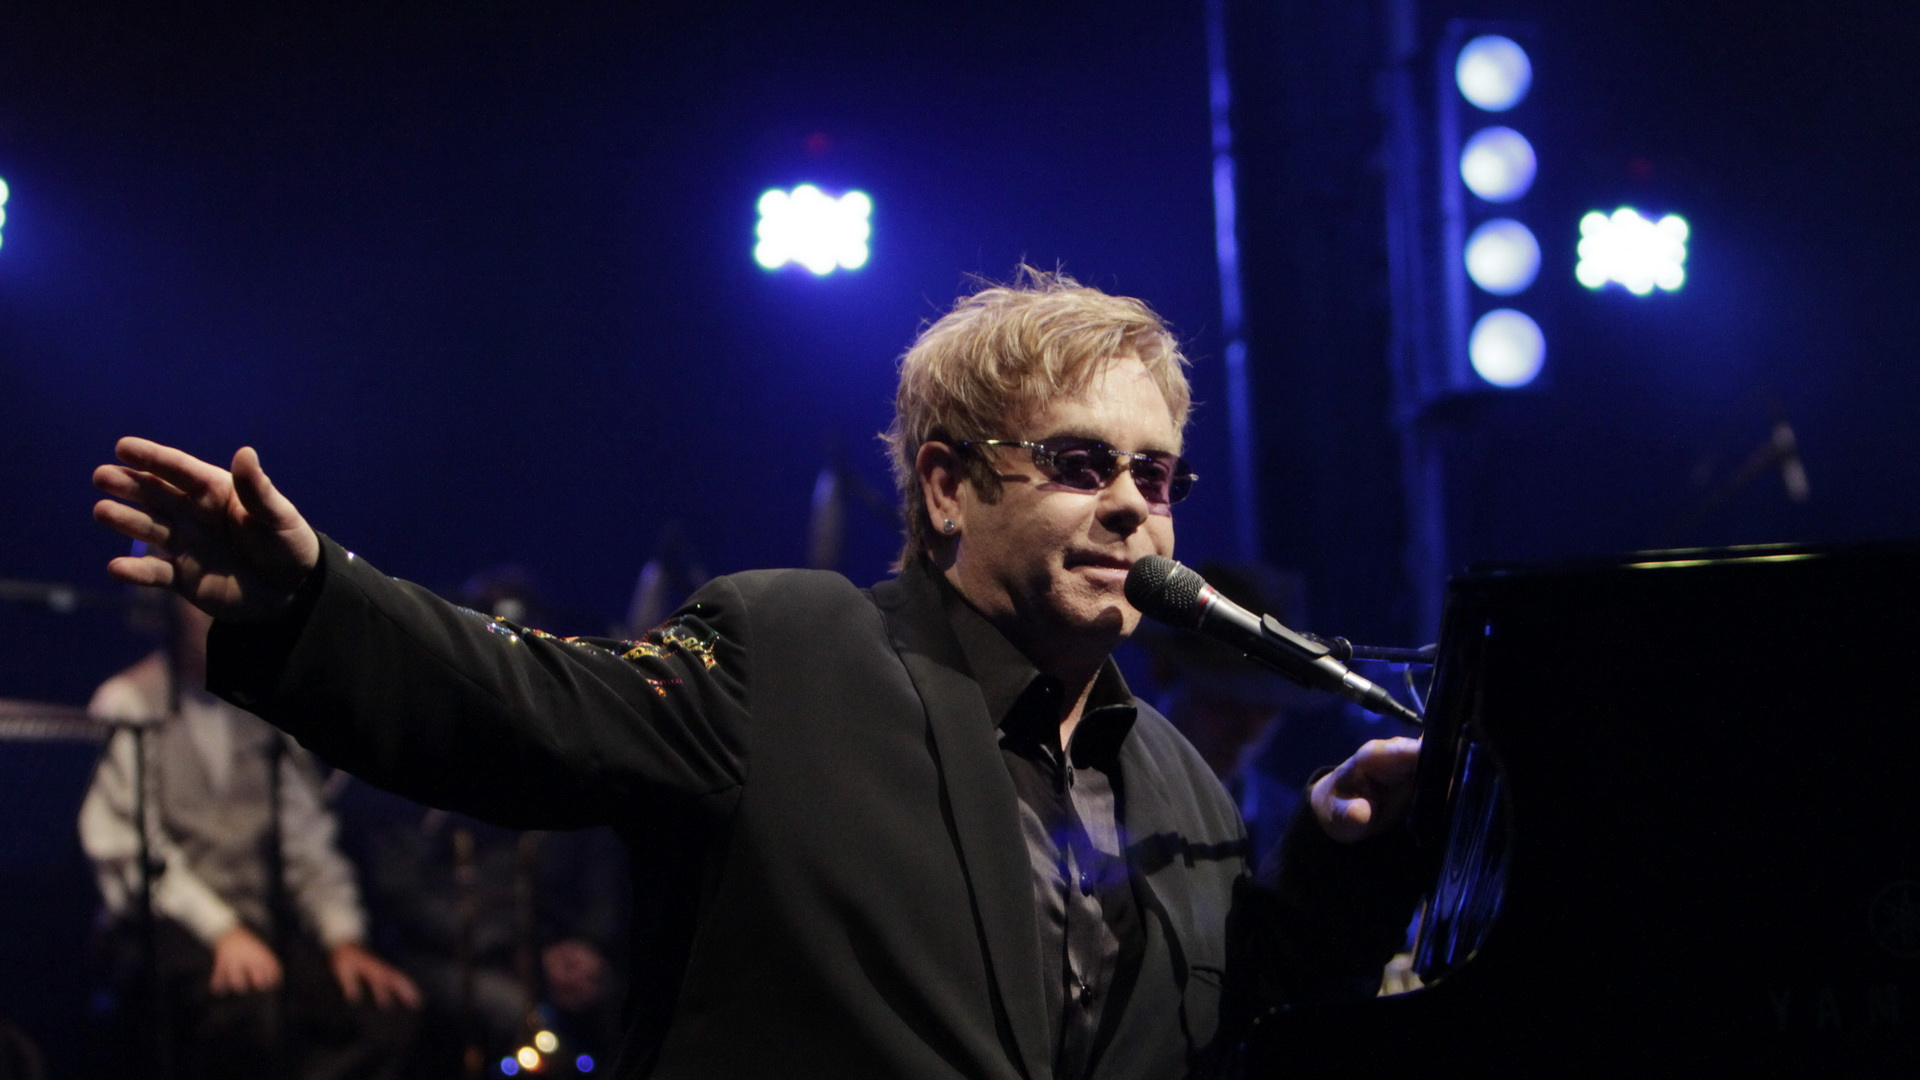 Elton John images Elton John HD wallpaper and background photos 1920x1080